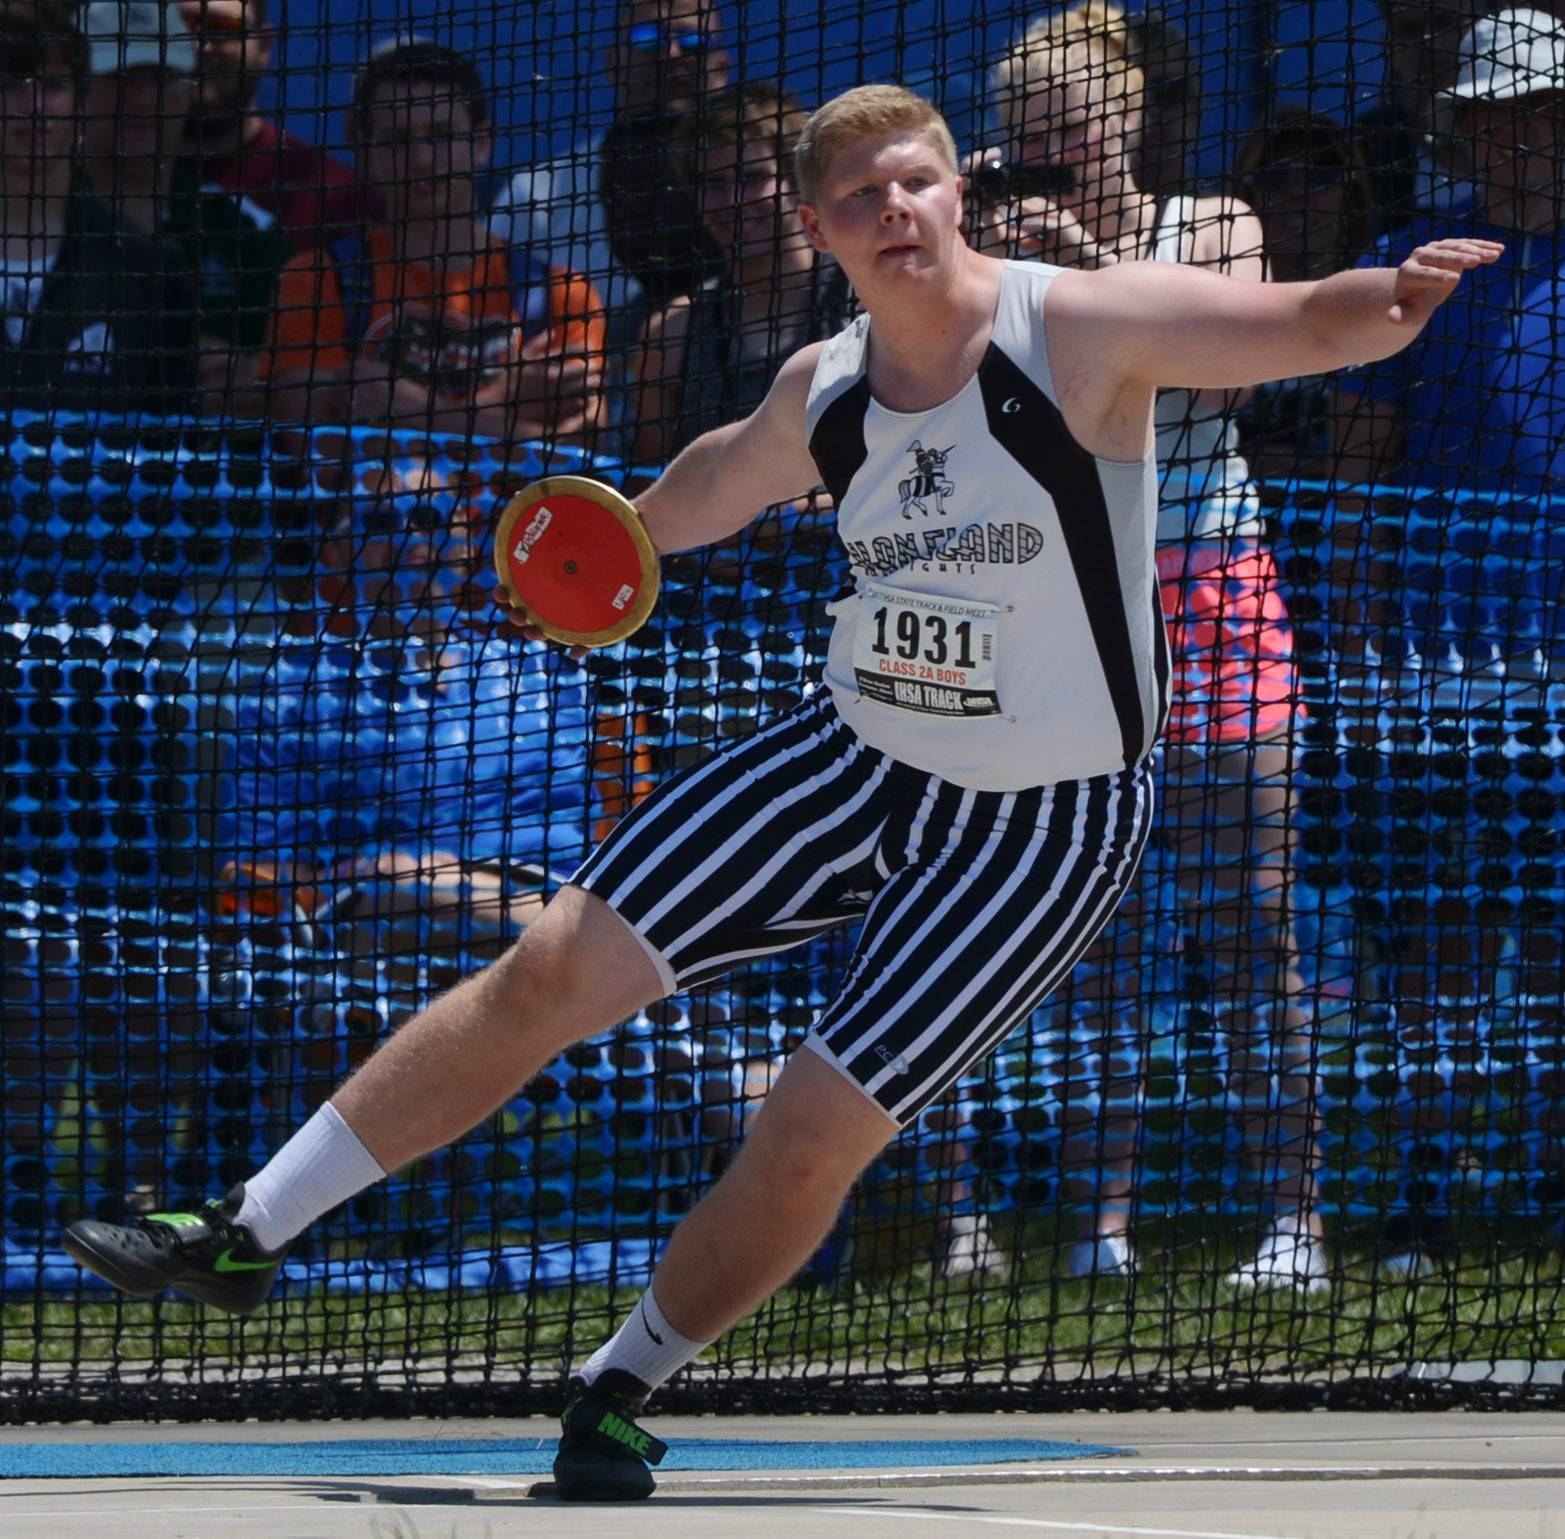 Kaneland's Clayton Hannula competes in the Class 2A discus throw during the boys state track and field preliminaries at Eastern Illinois University in Charleston Friday.